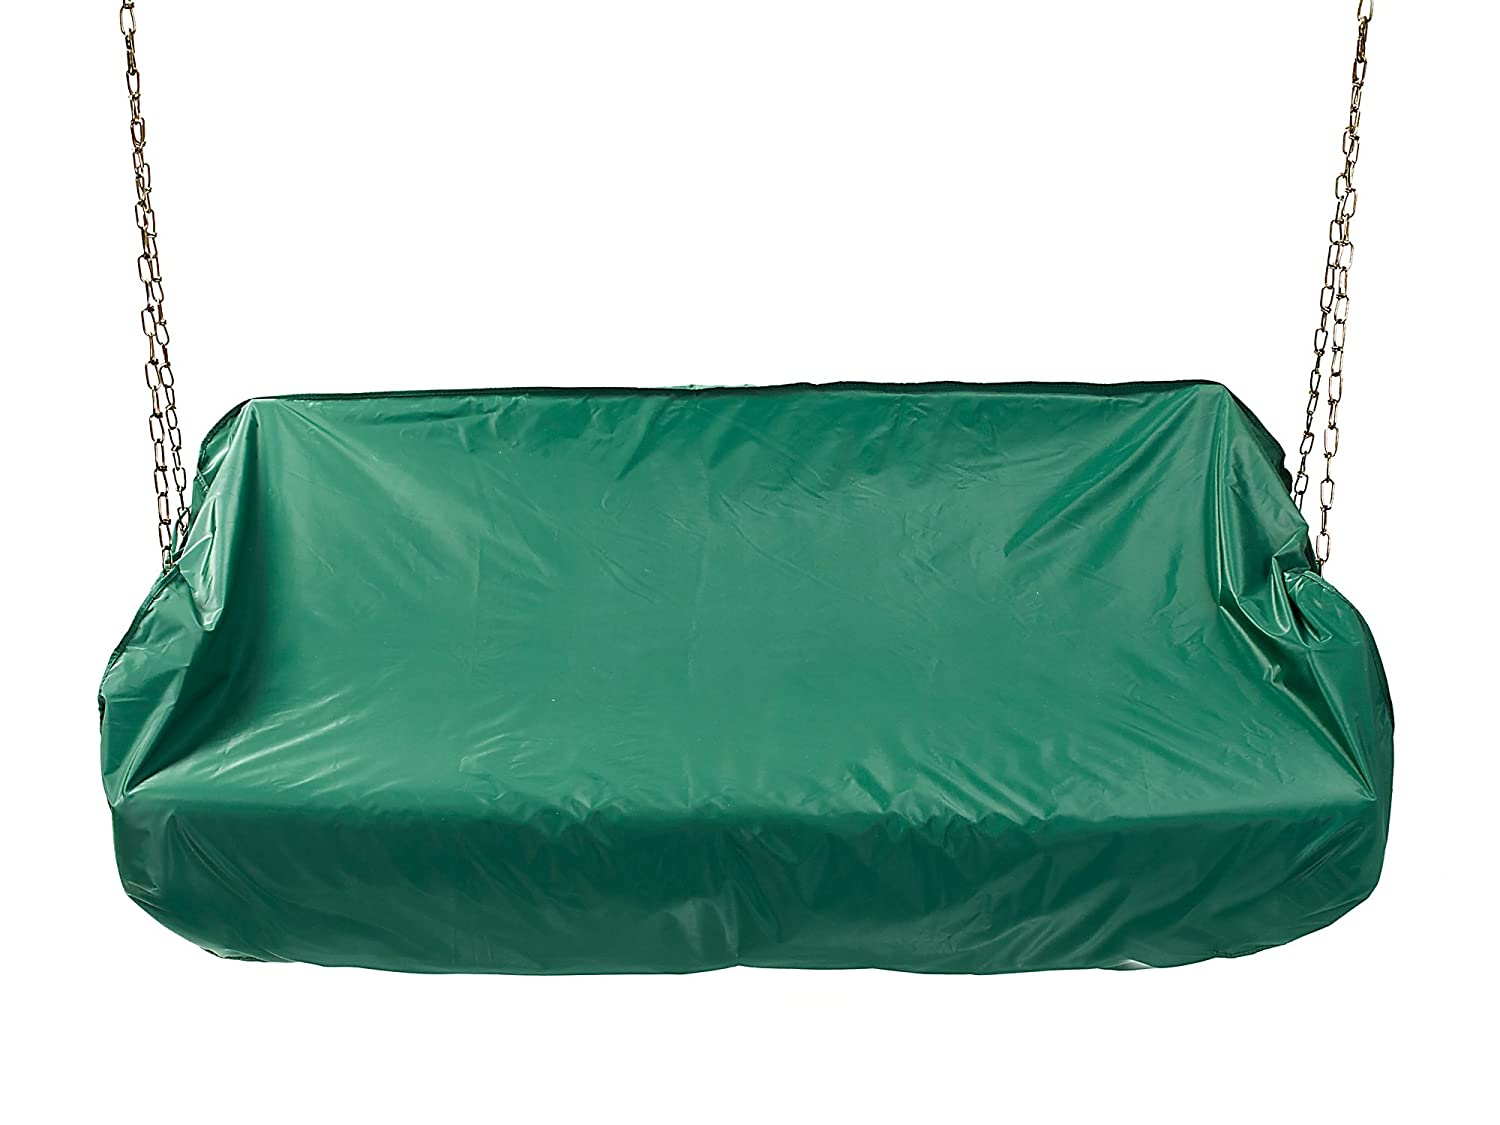 covermates patio furniture covers. Amazon.com : CoverMates - Outdoor Swing Covers 63W X 26D 26H Classic Collection 2 YR Warranty Year Around Protection Green Patio Furniture Covermates